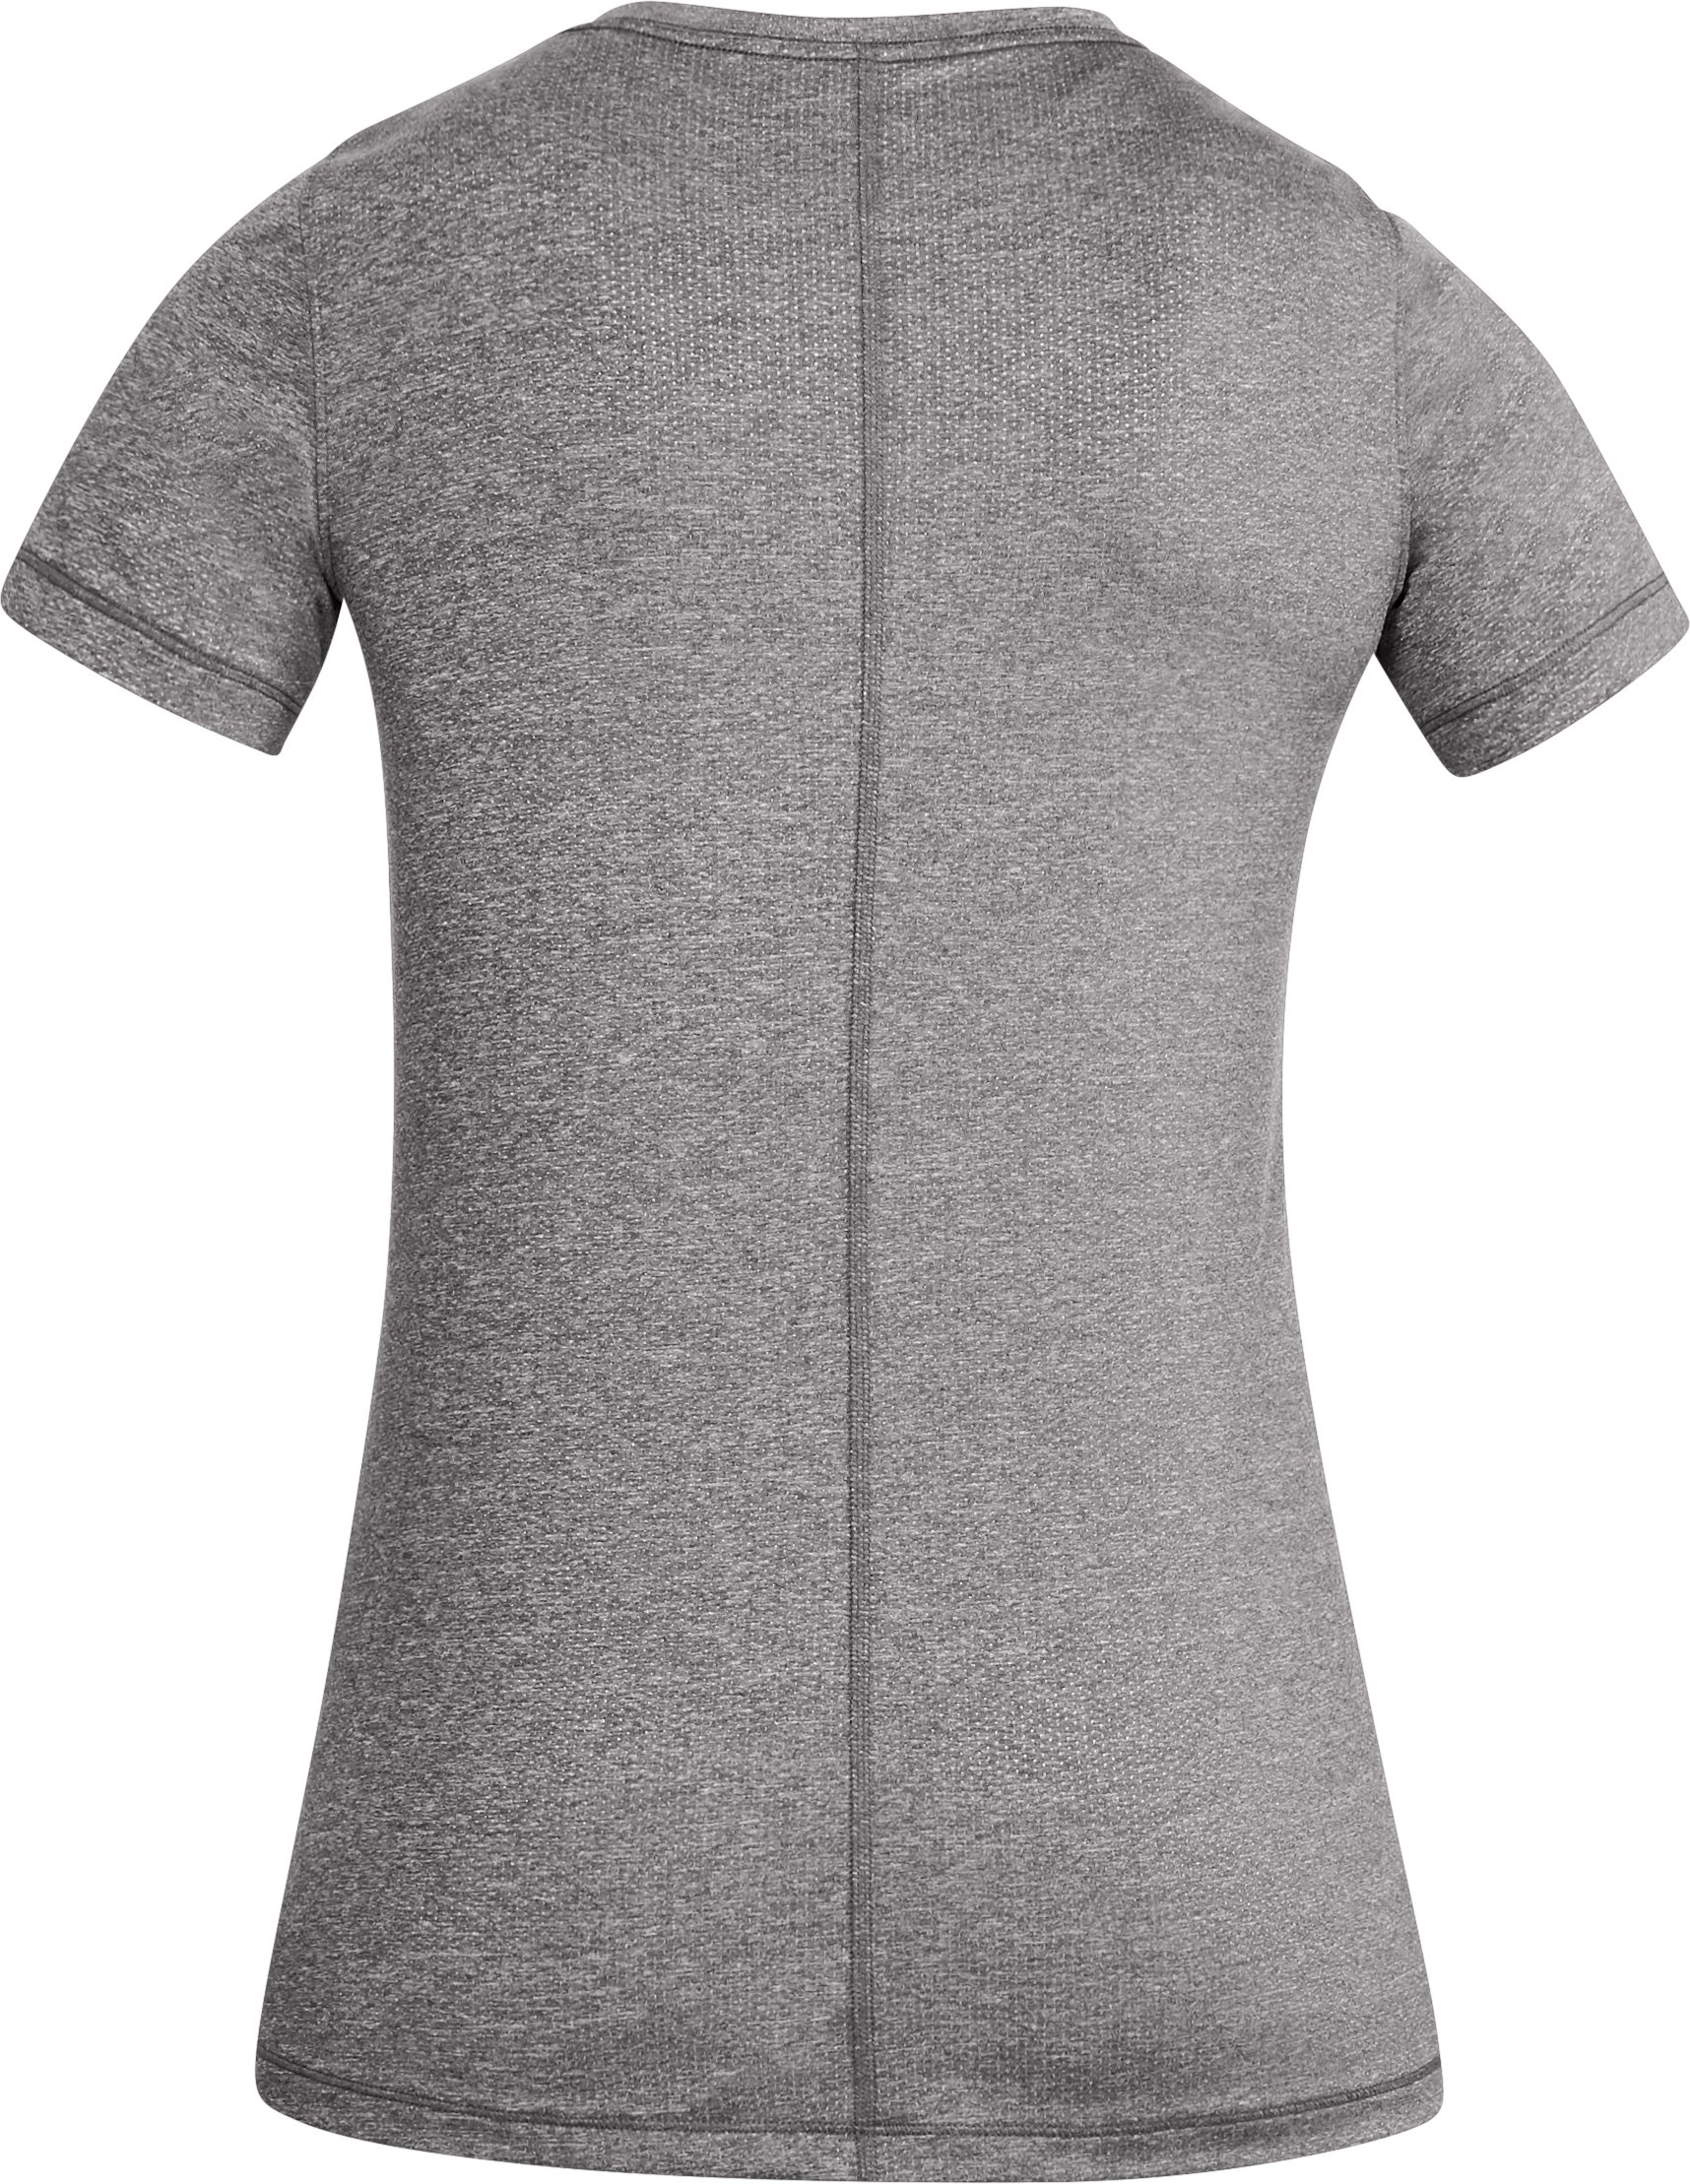 Women's HeatGear® Short Sleeve, CHARCOAL LIGHT HEATHER,